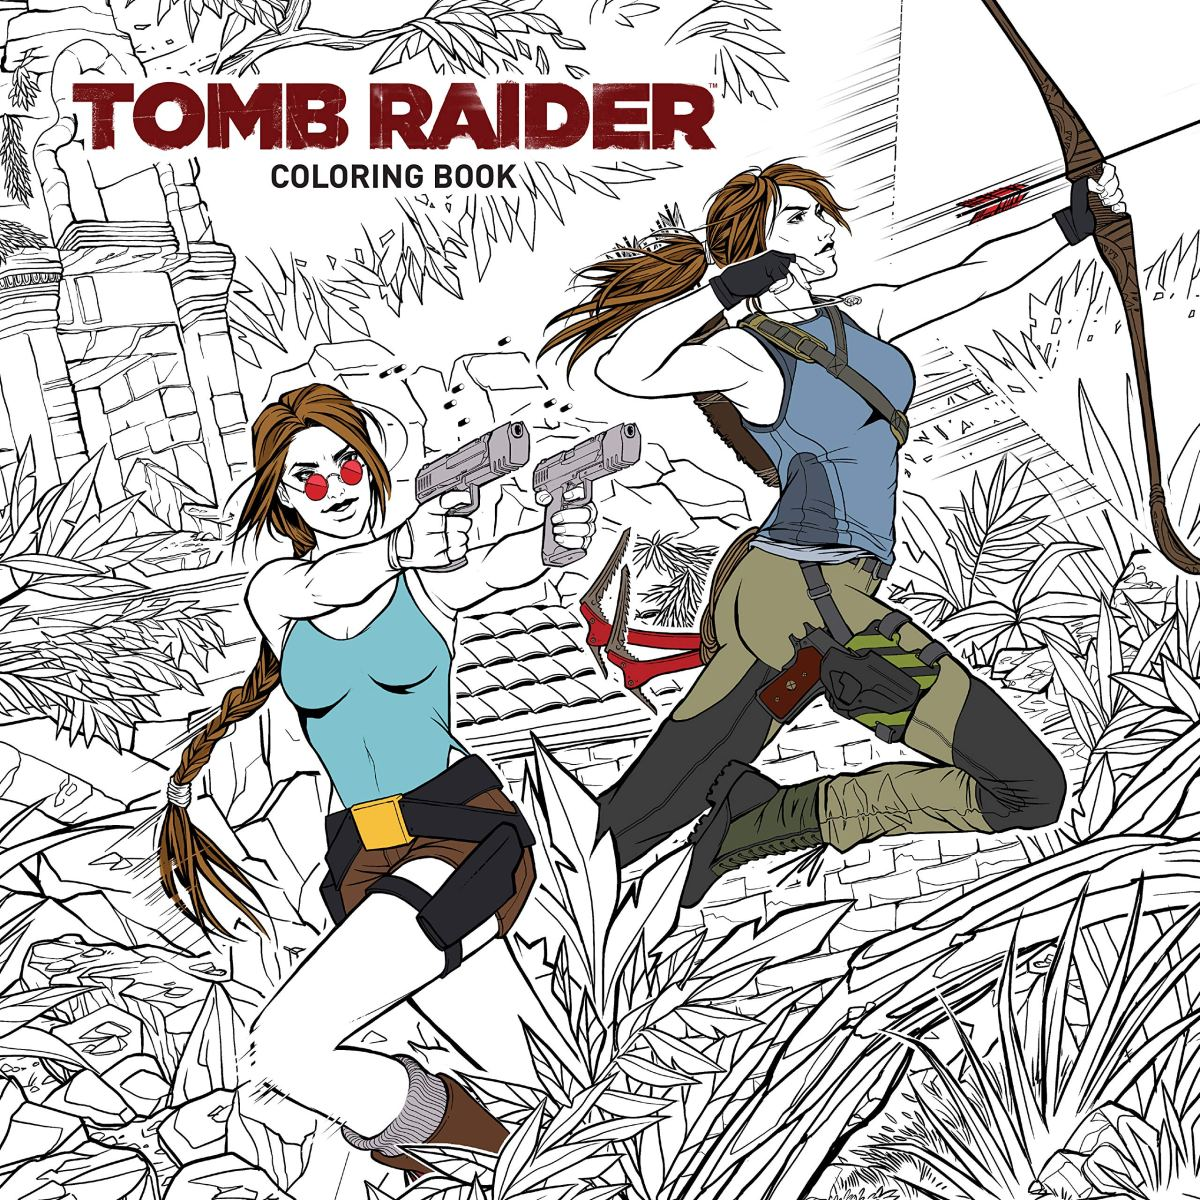 'Tomb Raider' Colouring Book Coming in January 2019